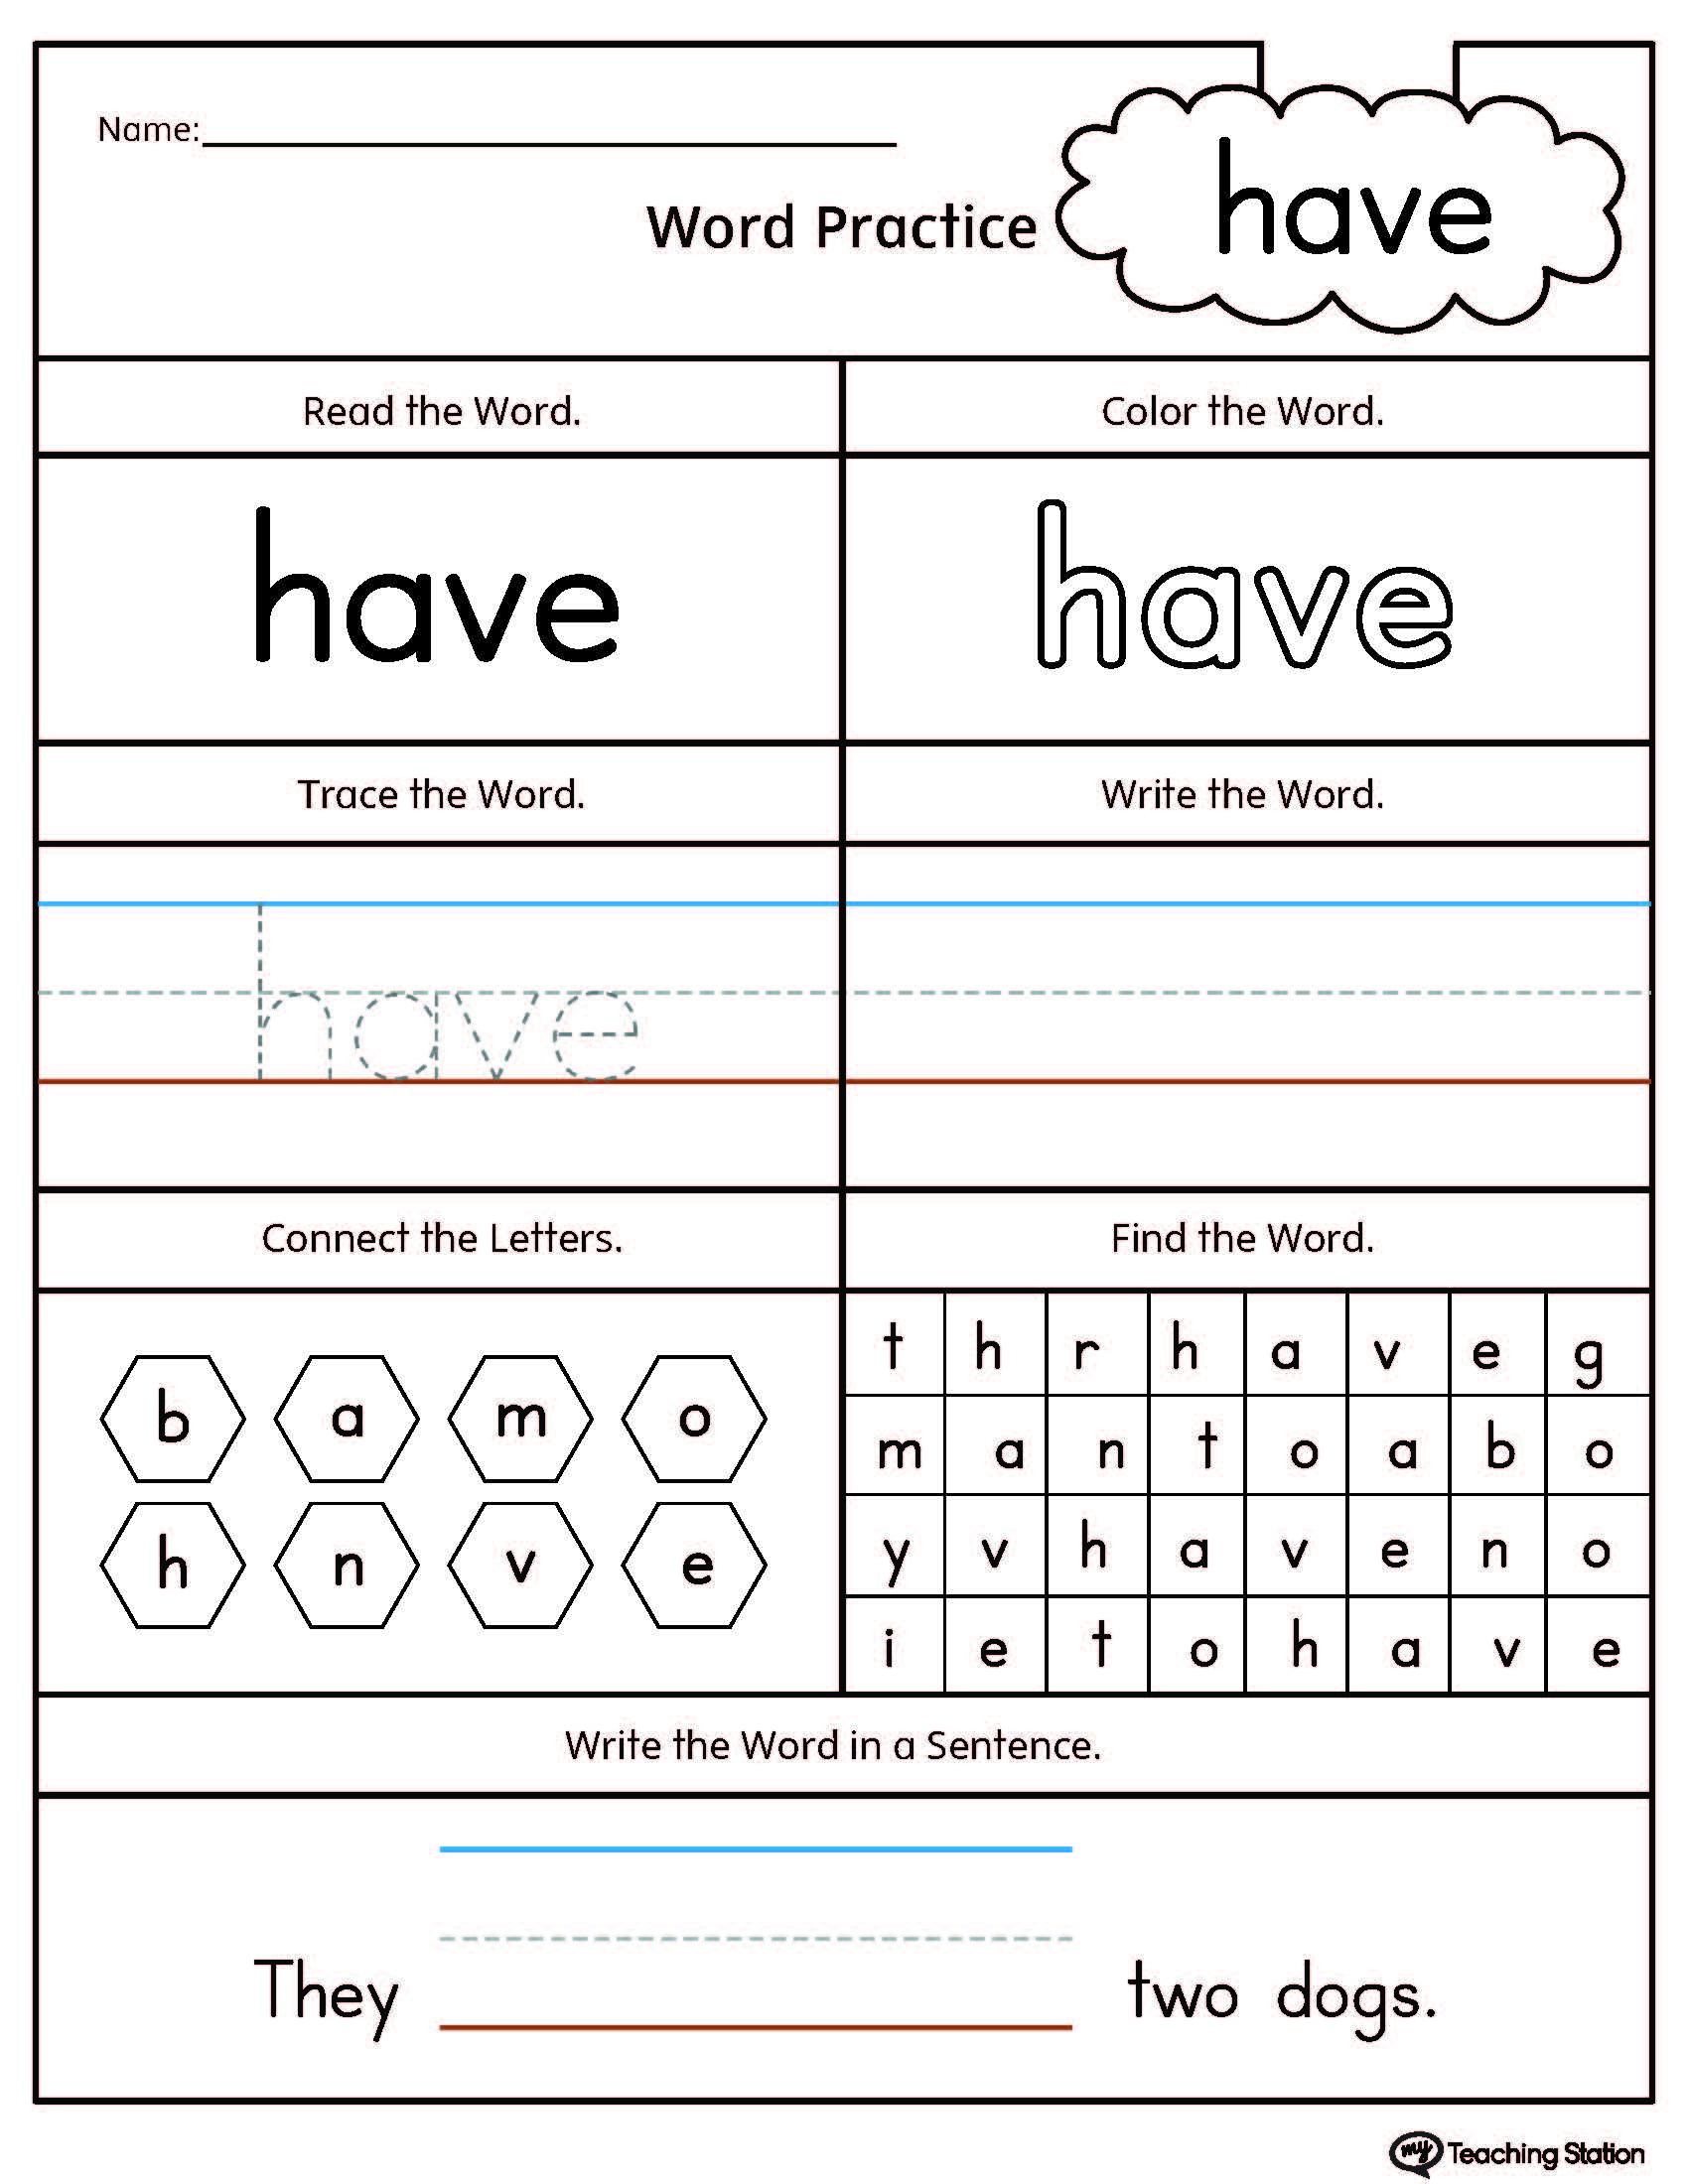 High Frequency Word Have Printable Worksheet